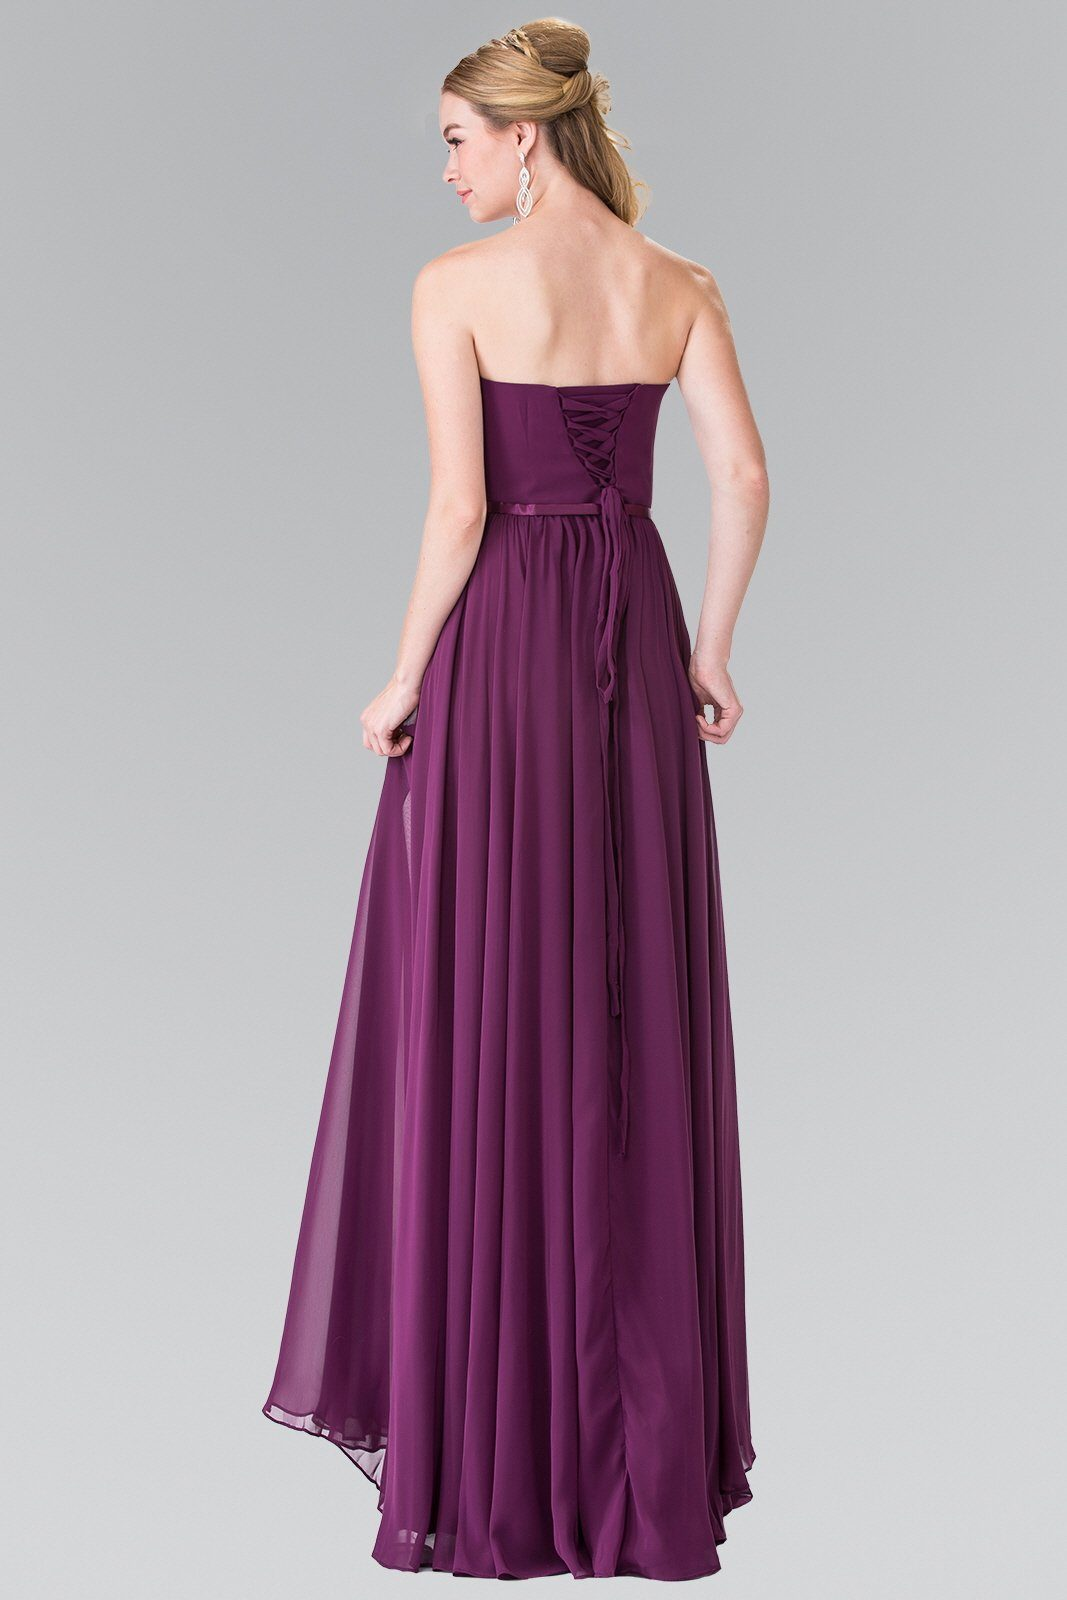 Inexpensive bridesmaid dress simply fab dress inexpensive bridesmaid dress gls gl2069 simply fab dress ombrellifo Gallery